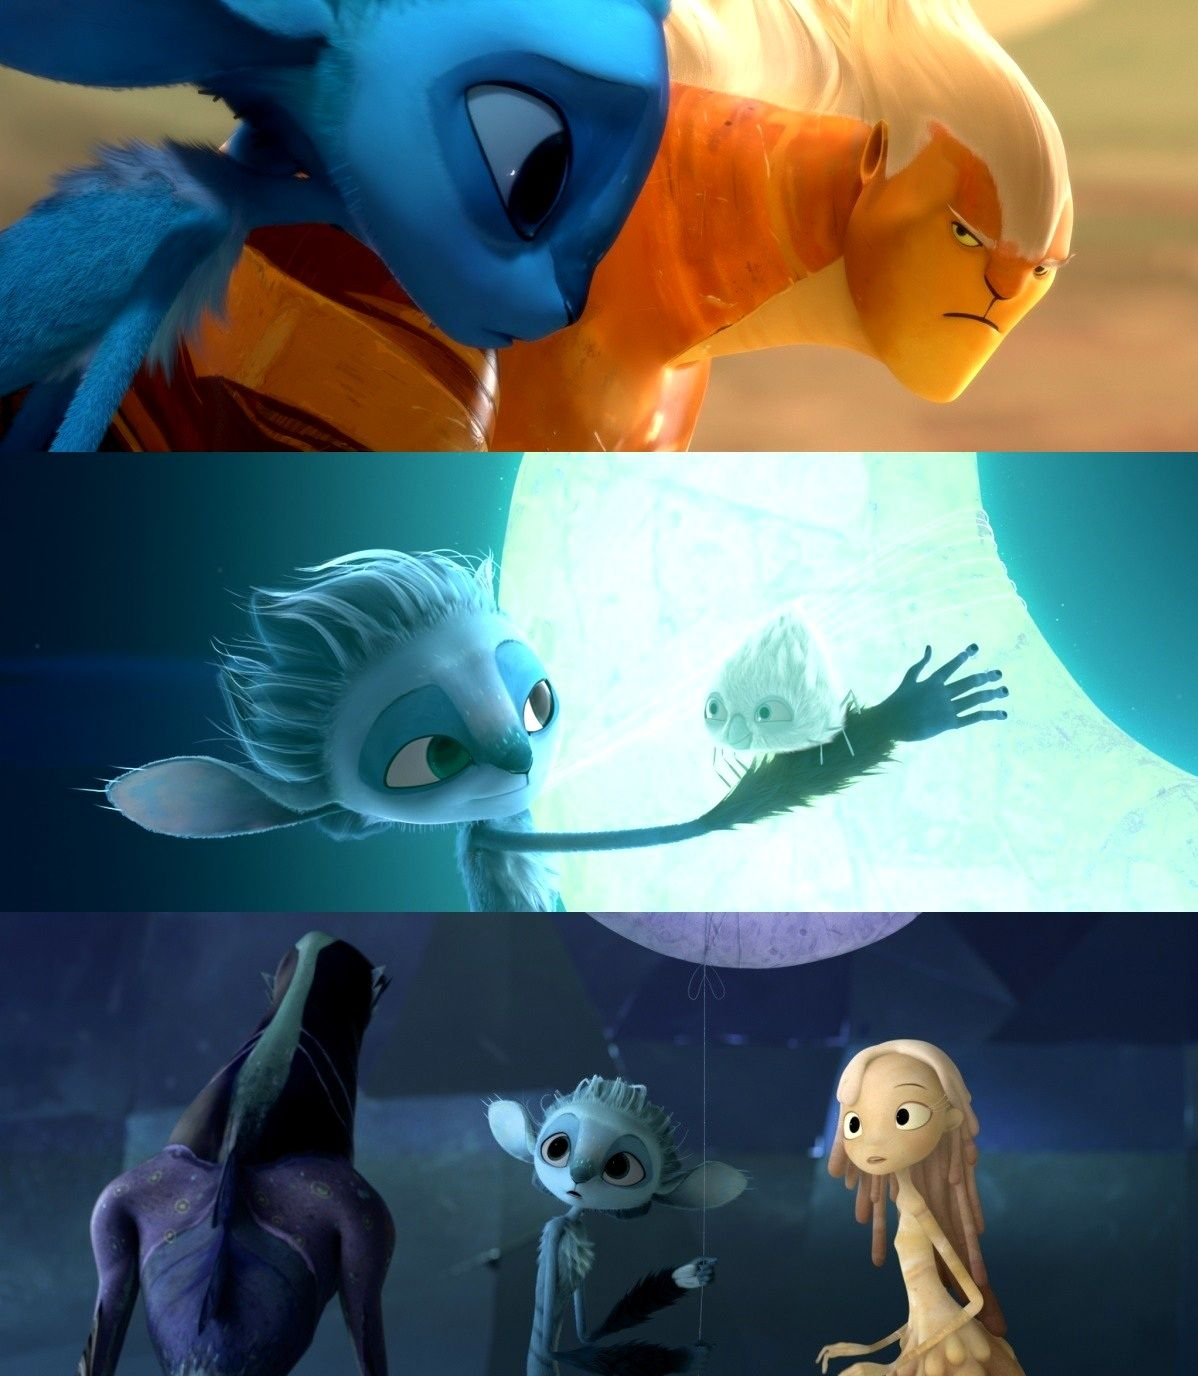 Mune Le Gardien De La Lune Disney Princess Anime All Animated Movies Guardian Of The Moon